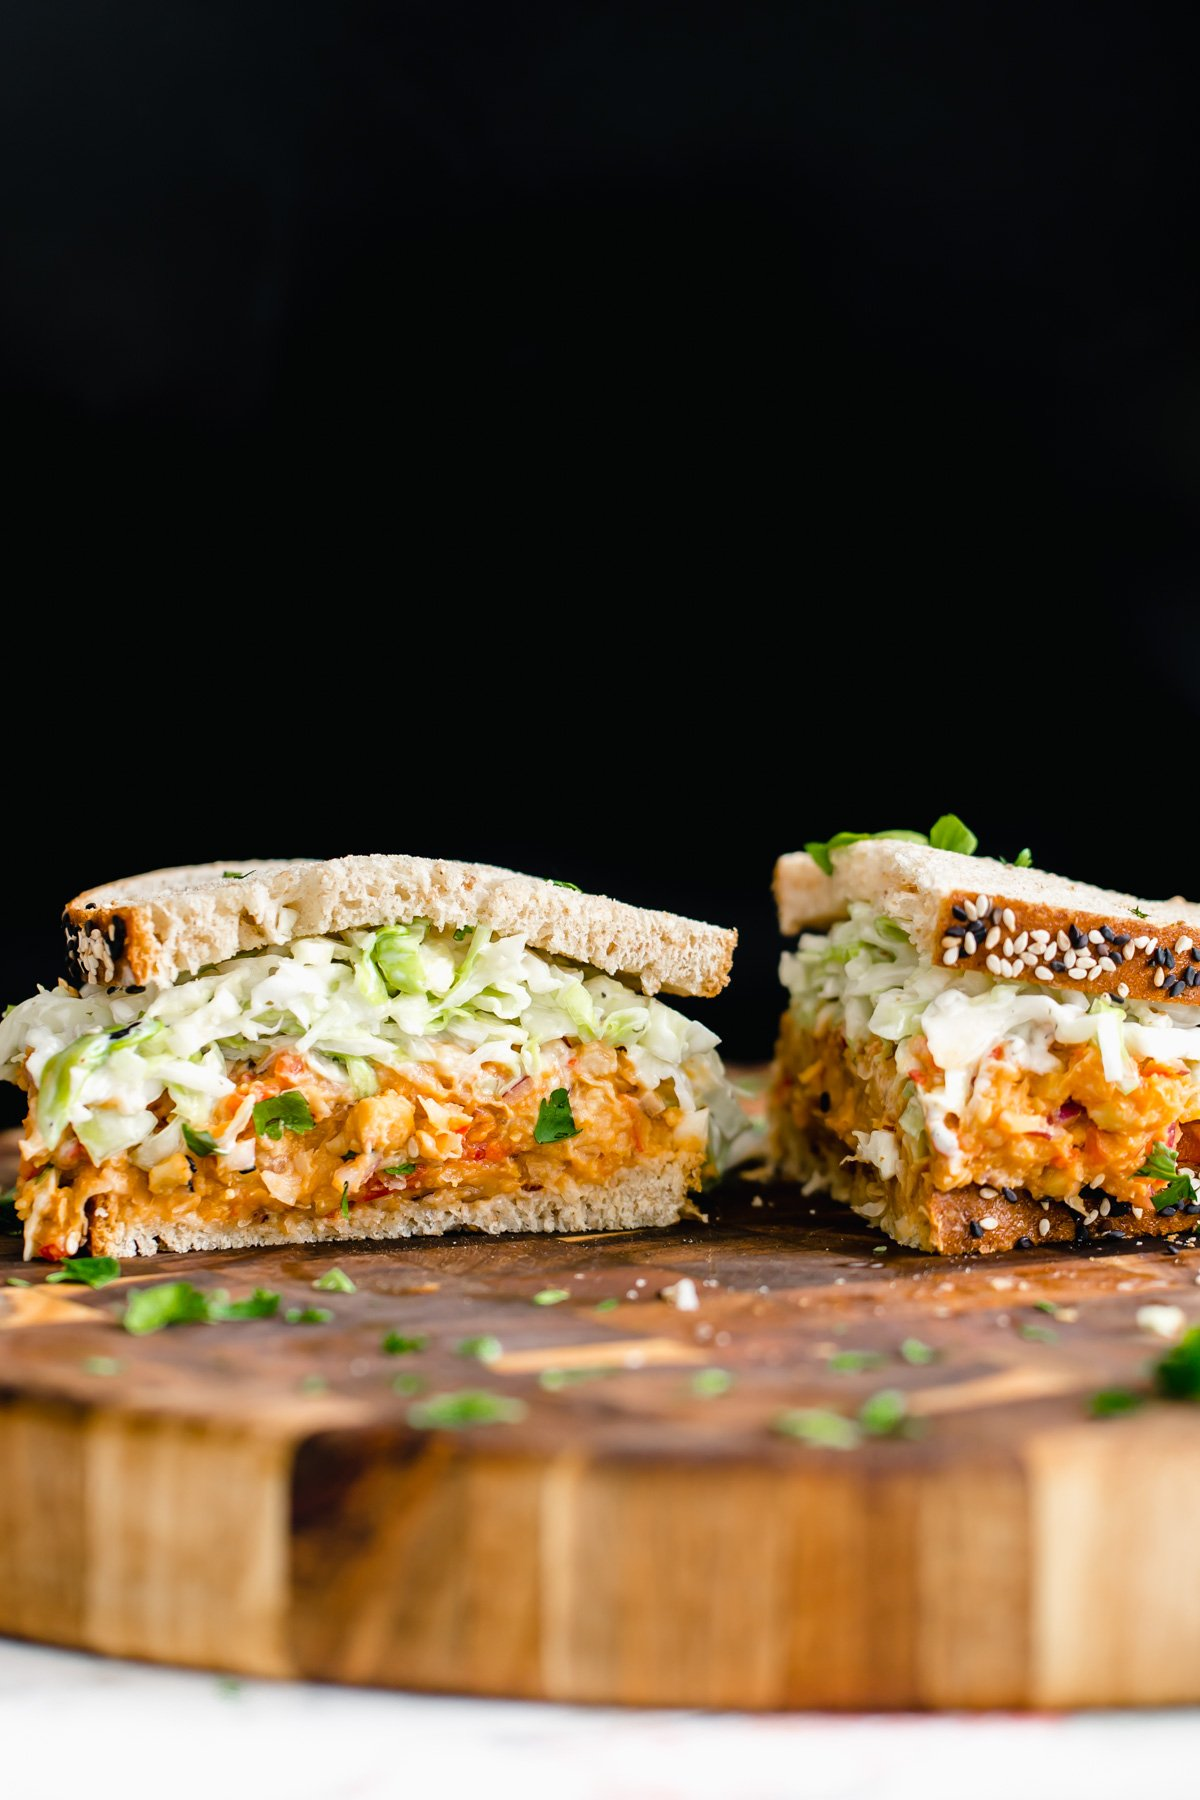 a halved buffalo chickpea salad sandwich with slaw on a wooden chopping board